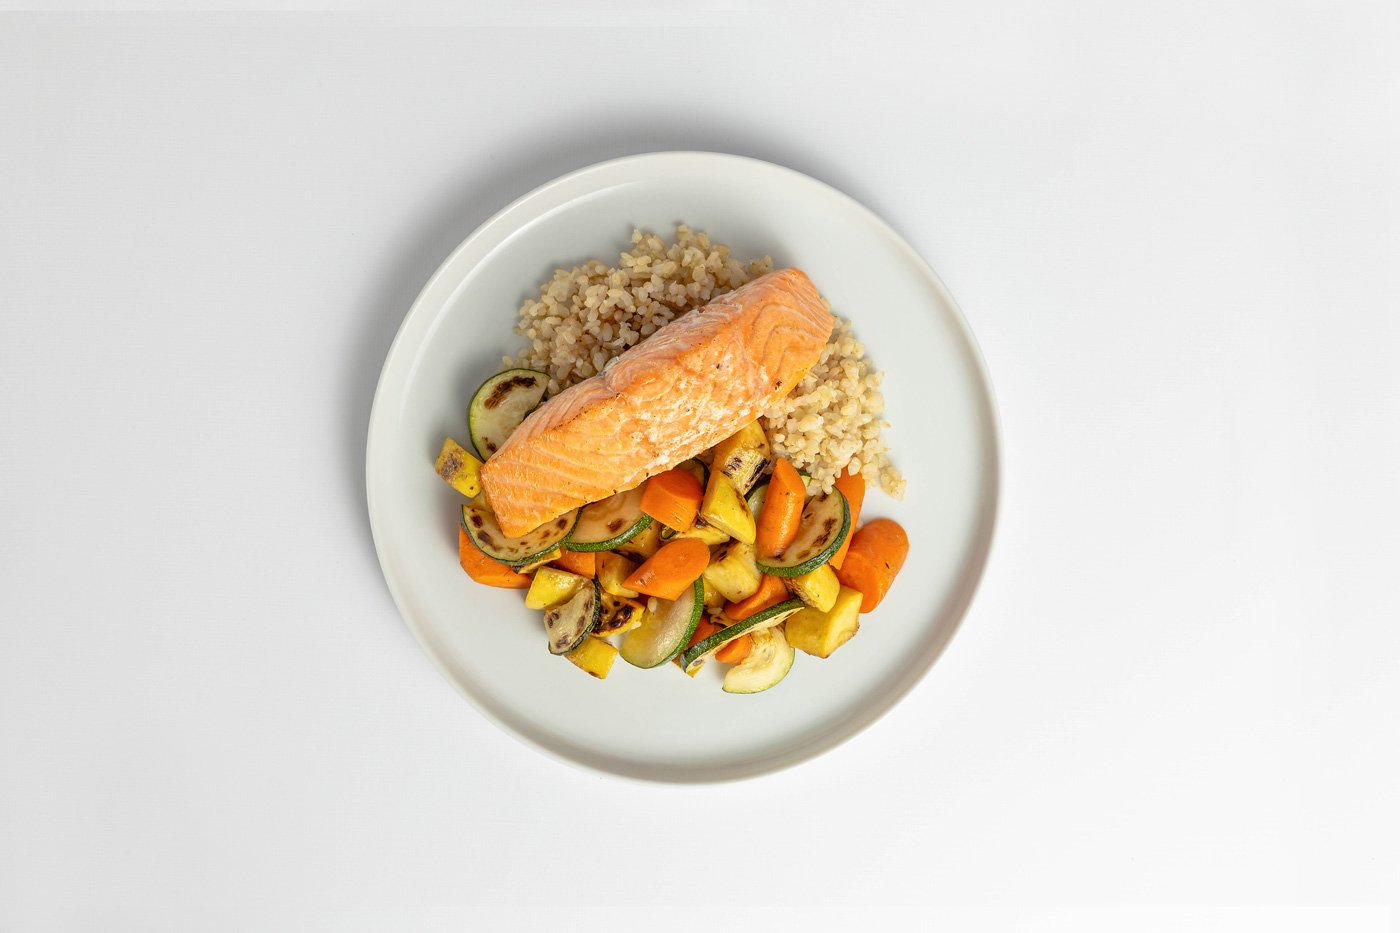 Salmon, Brown Rice, Mixed Vegetables Meal Product Image